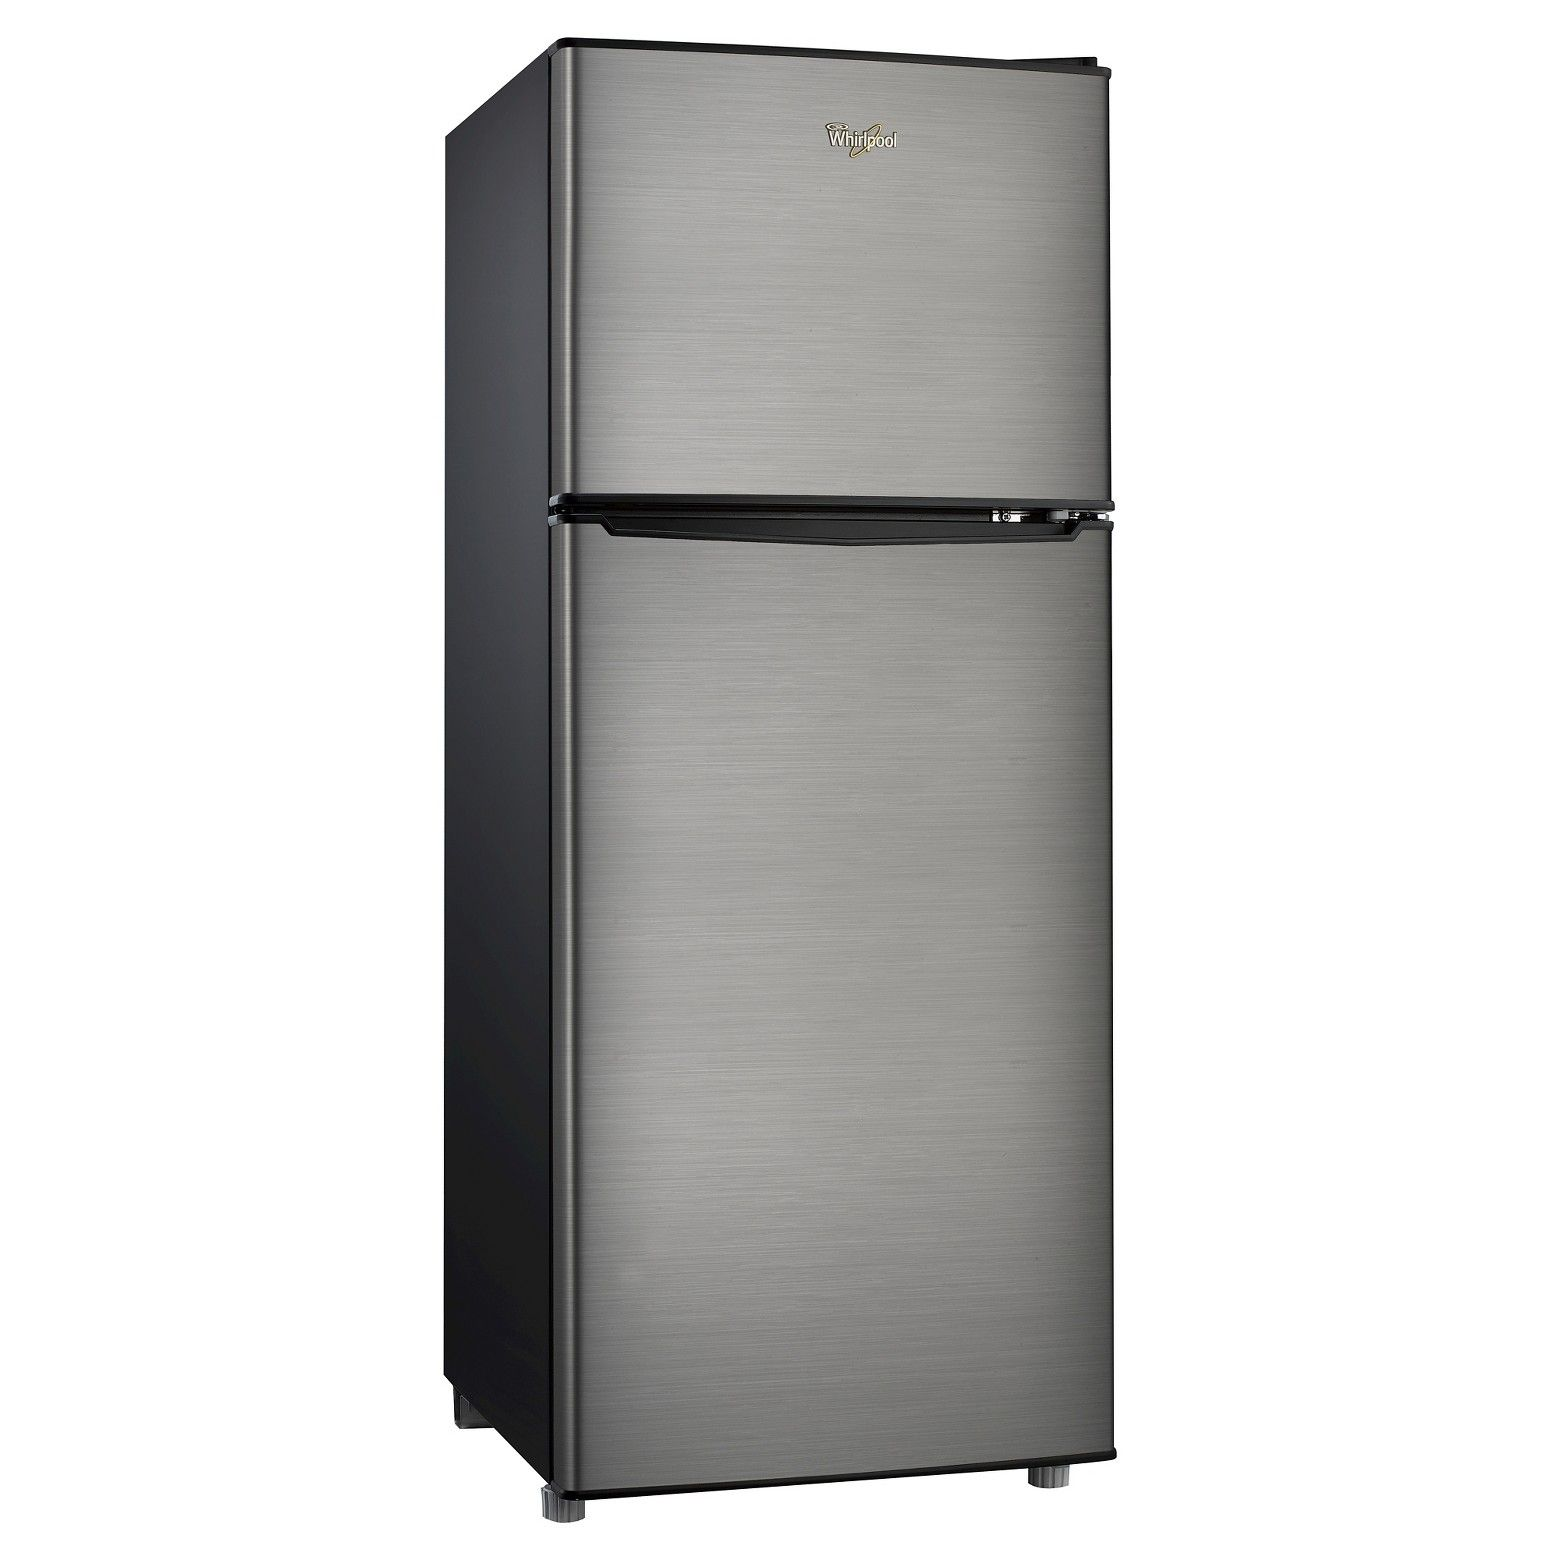 Whirlpool 4 6 Cu Ft Compact Refrigerator Stainless Steel Bcd 133v62 Compact Refrigerator Stainless Steel Refrigerator Apartment Size Refrigerator